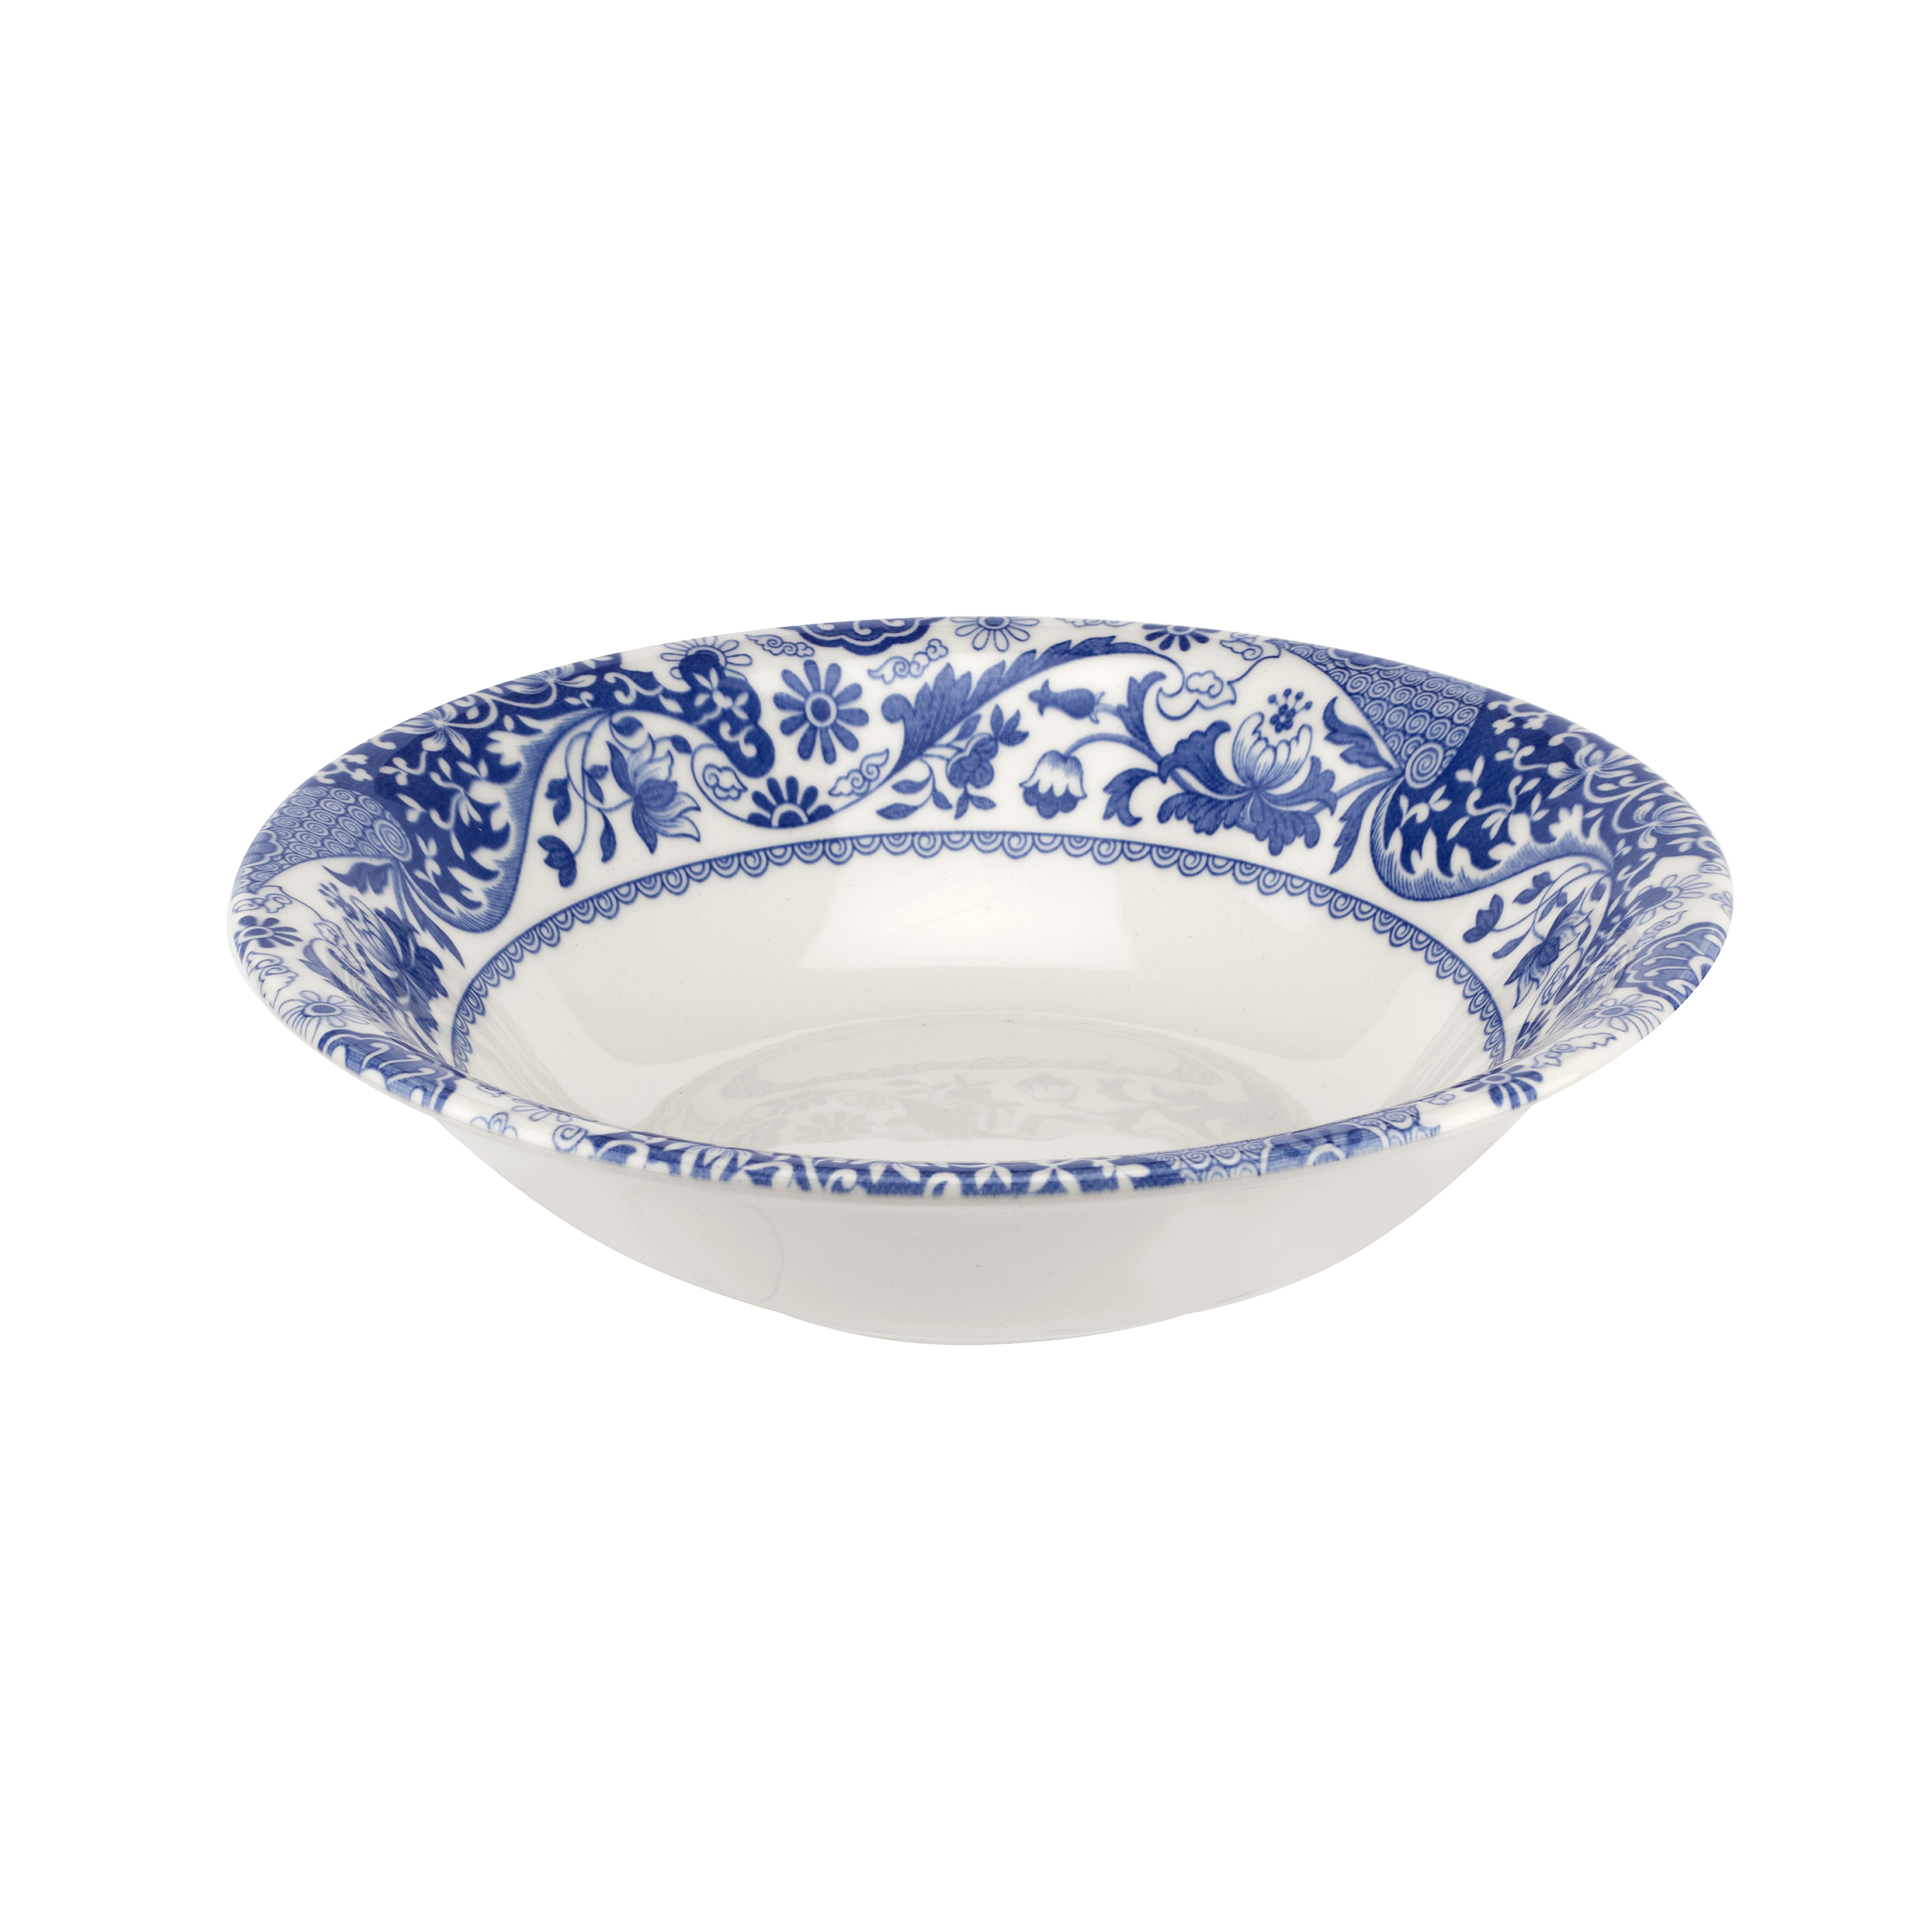 Spode Blue Italian Brocato 6.5 Inch Cereal Bowl image number 0